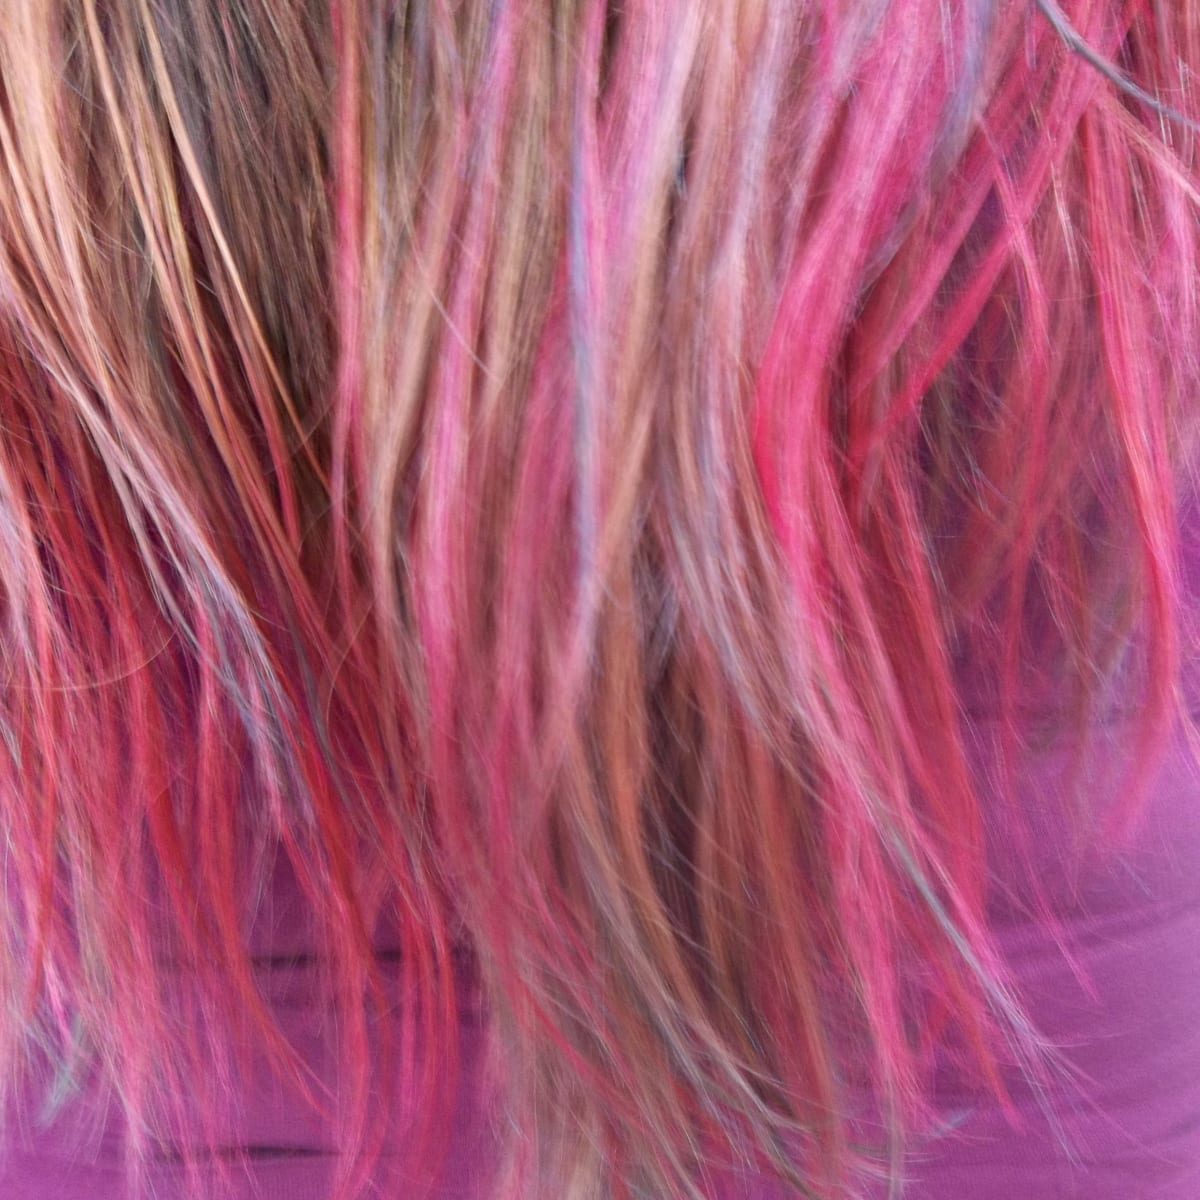 How To Dye The Ends Of Your Hair Fun Colors Tips From A Pro Bellatory Fashion And Beauty